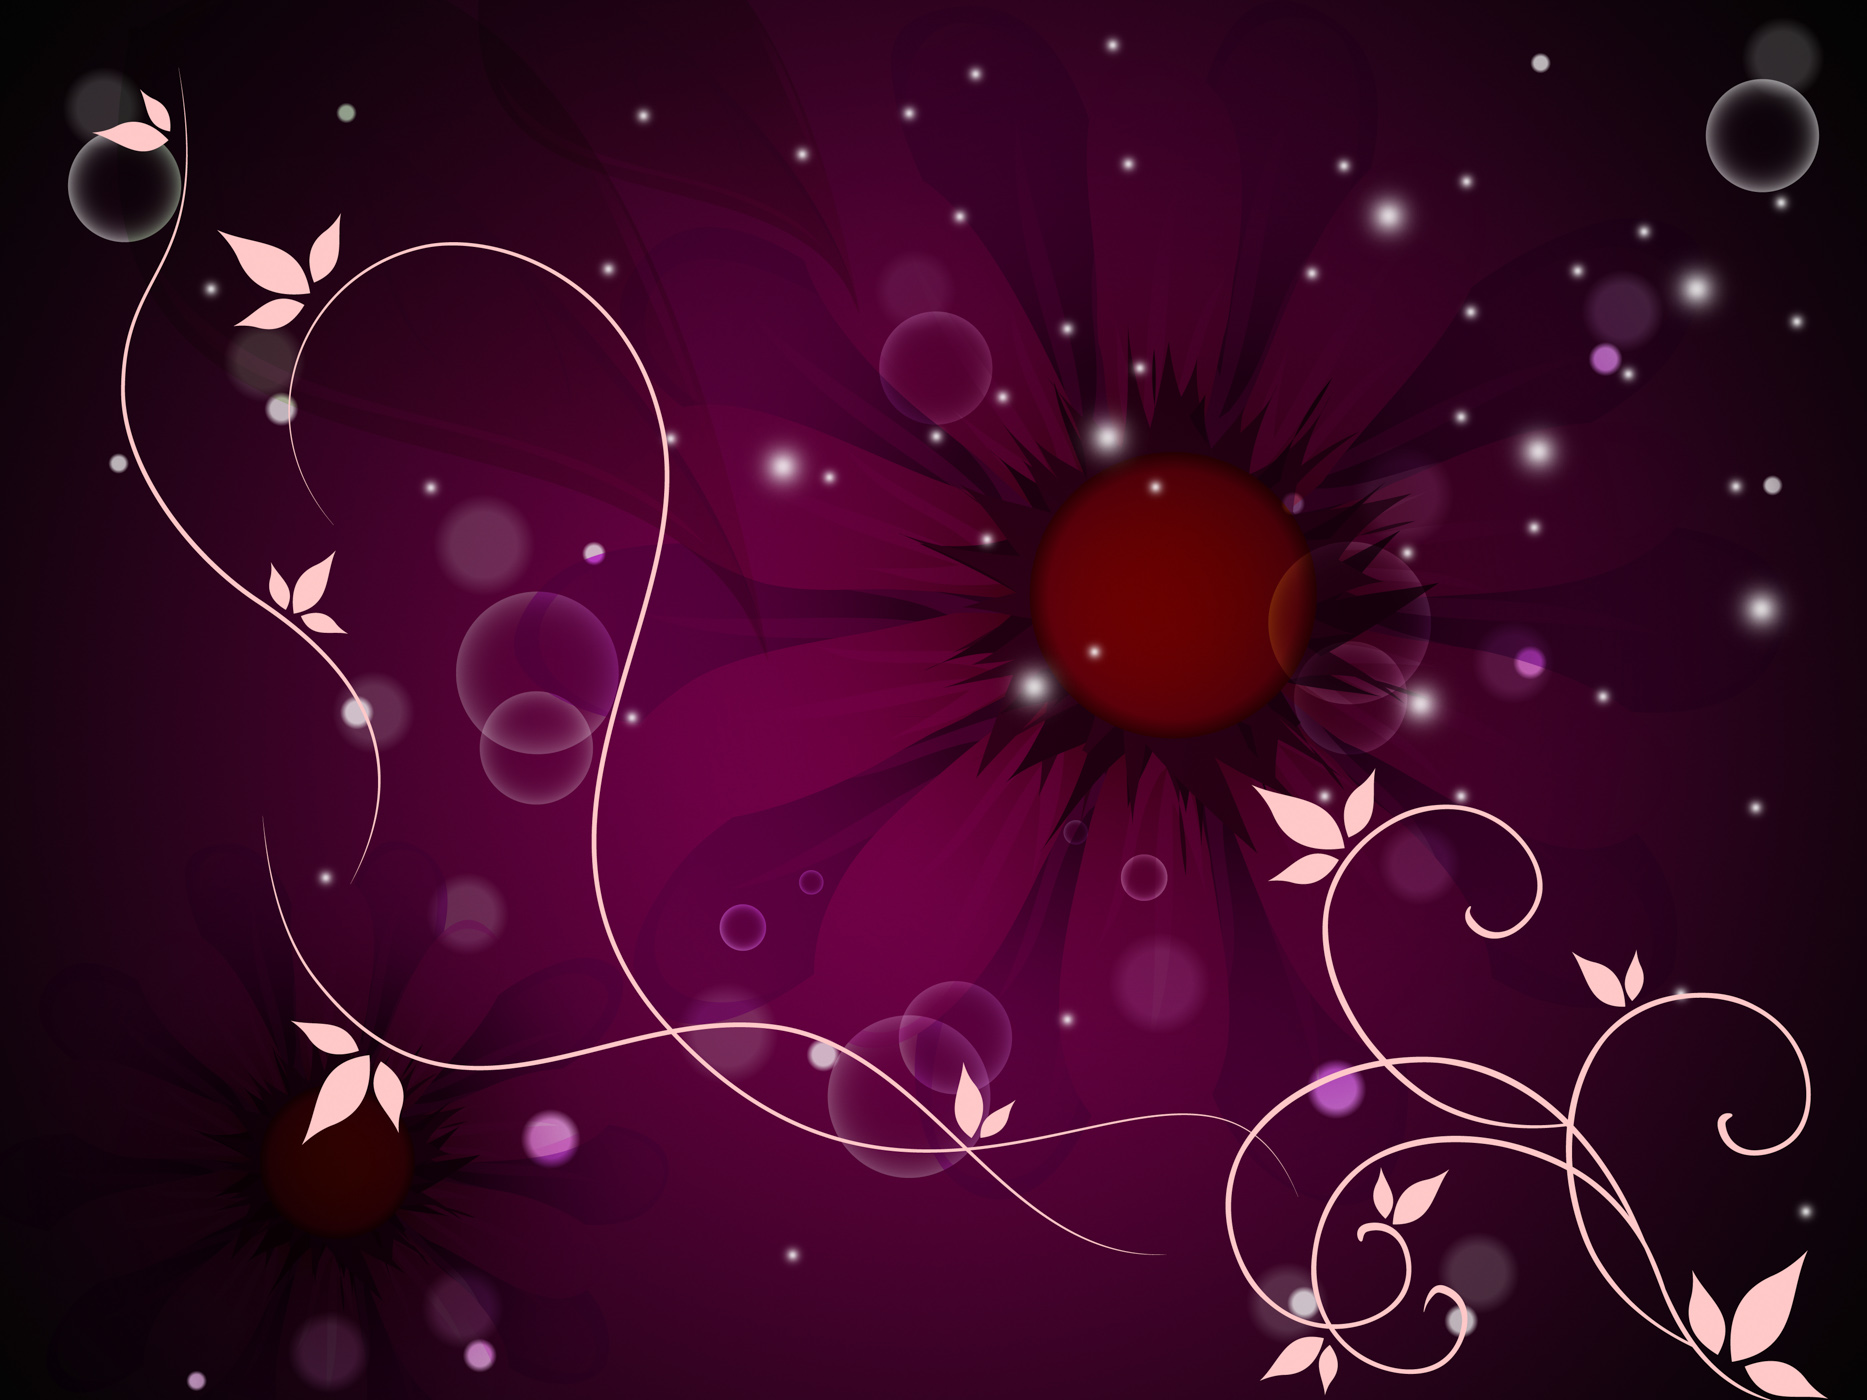 Flower Background Means Bud Blossom And Grow, Admire, Shoot, Planting, Petals, HQ Photo